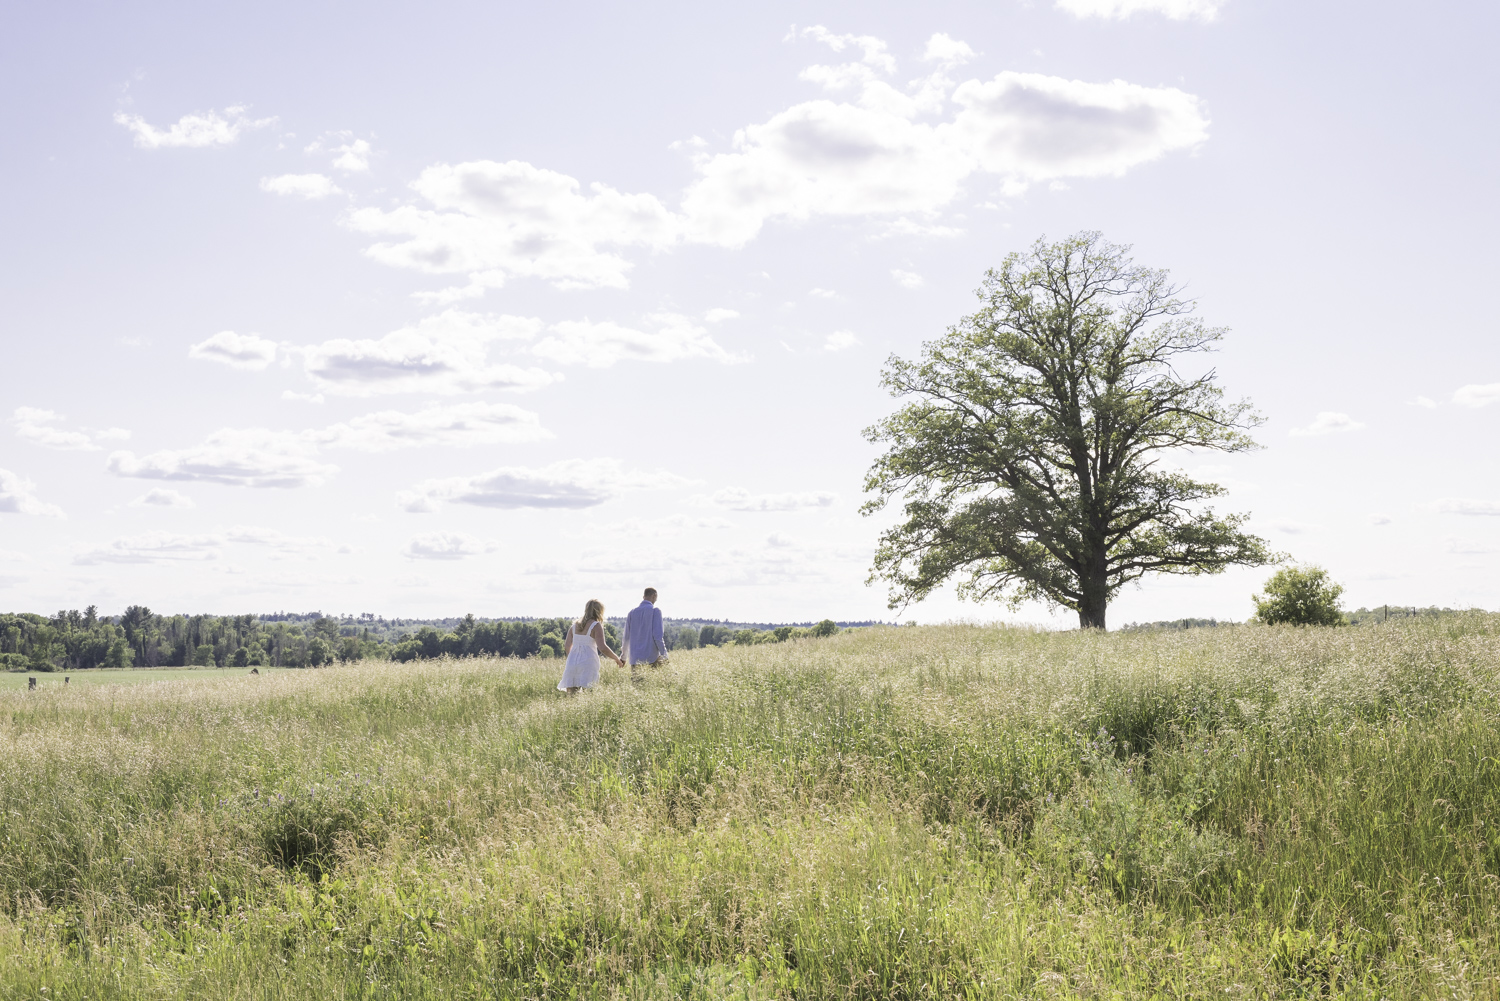 A properly exposed photo of a couple walking through a field towards a tree